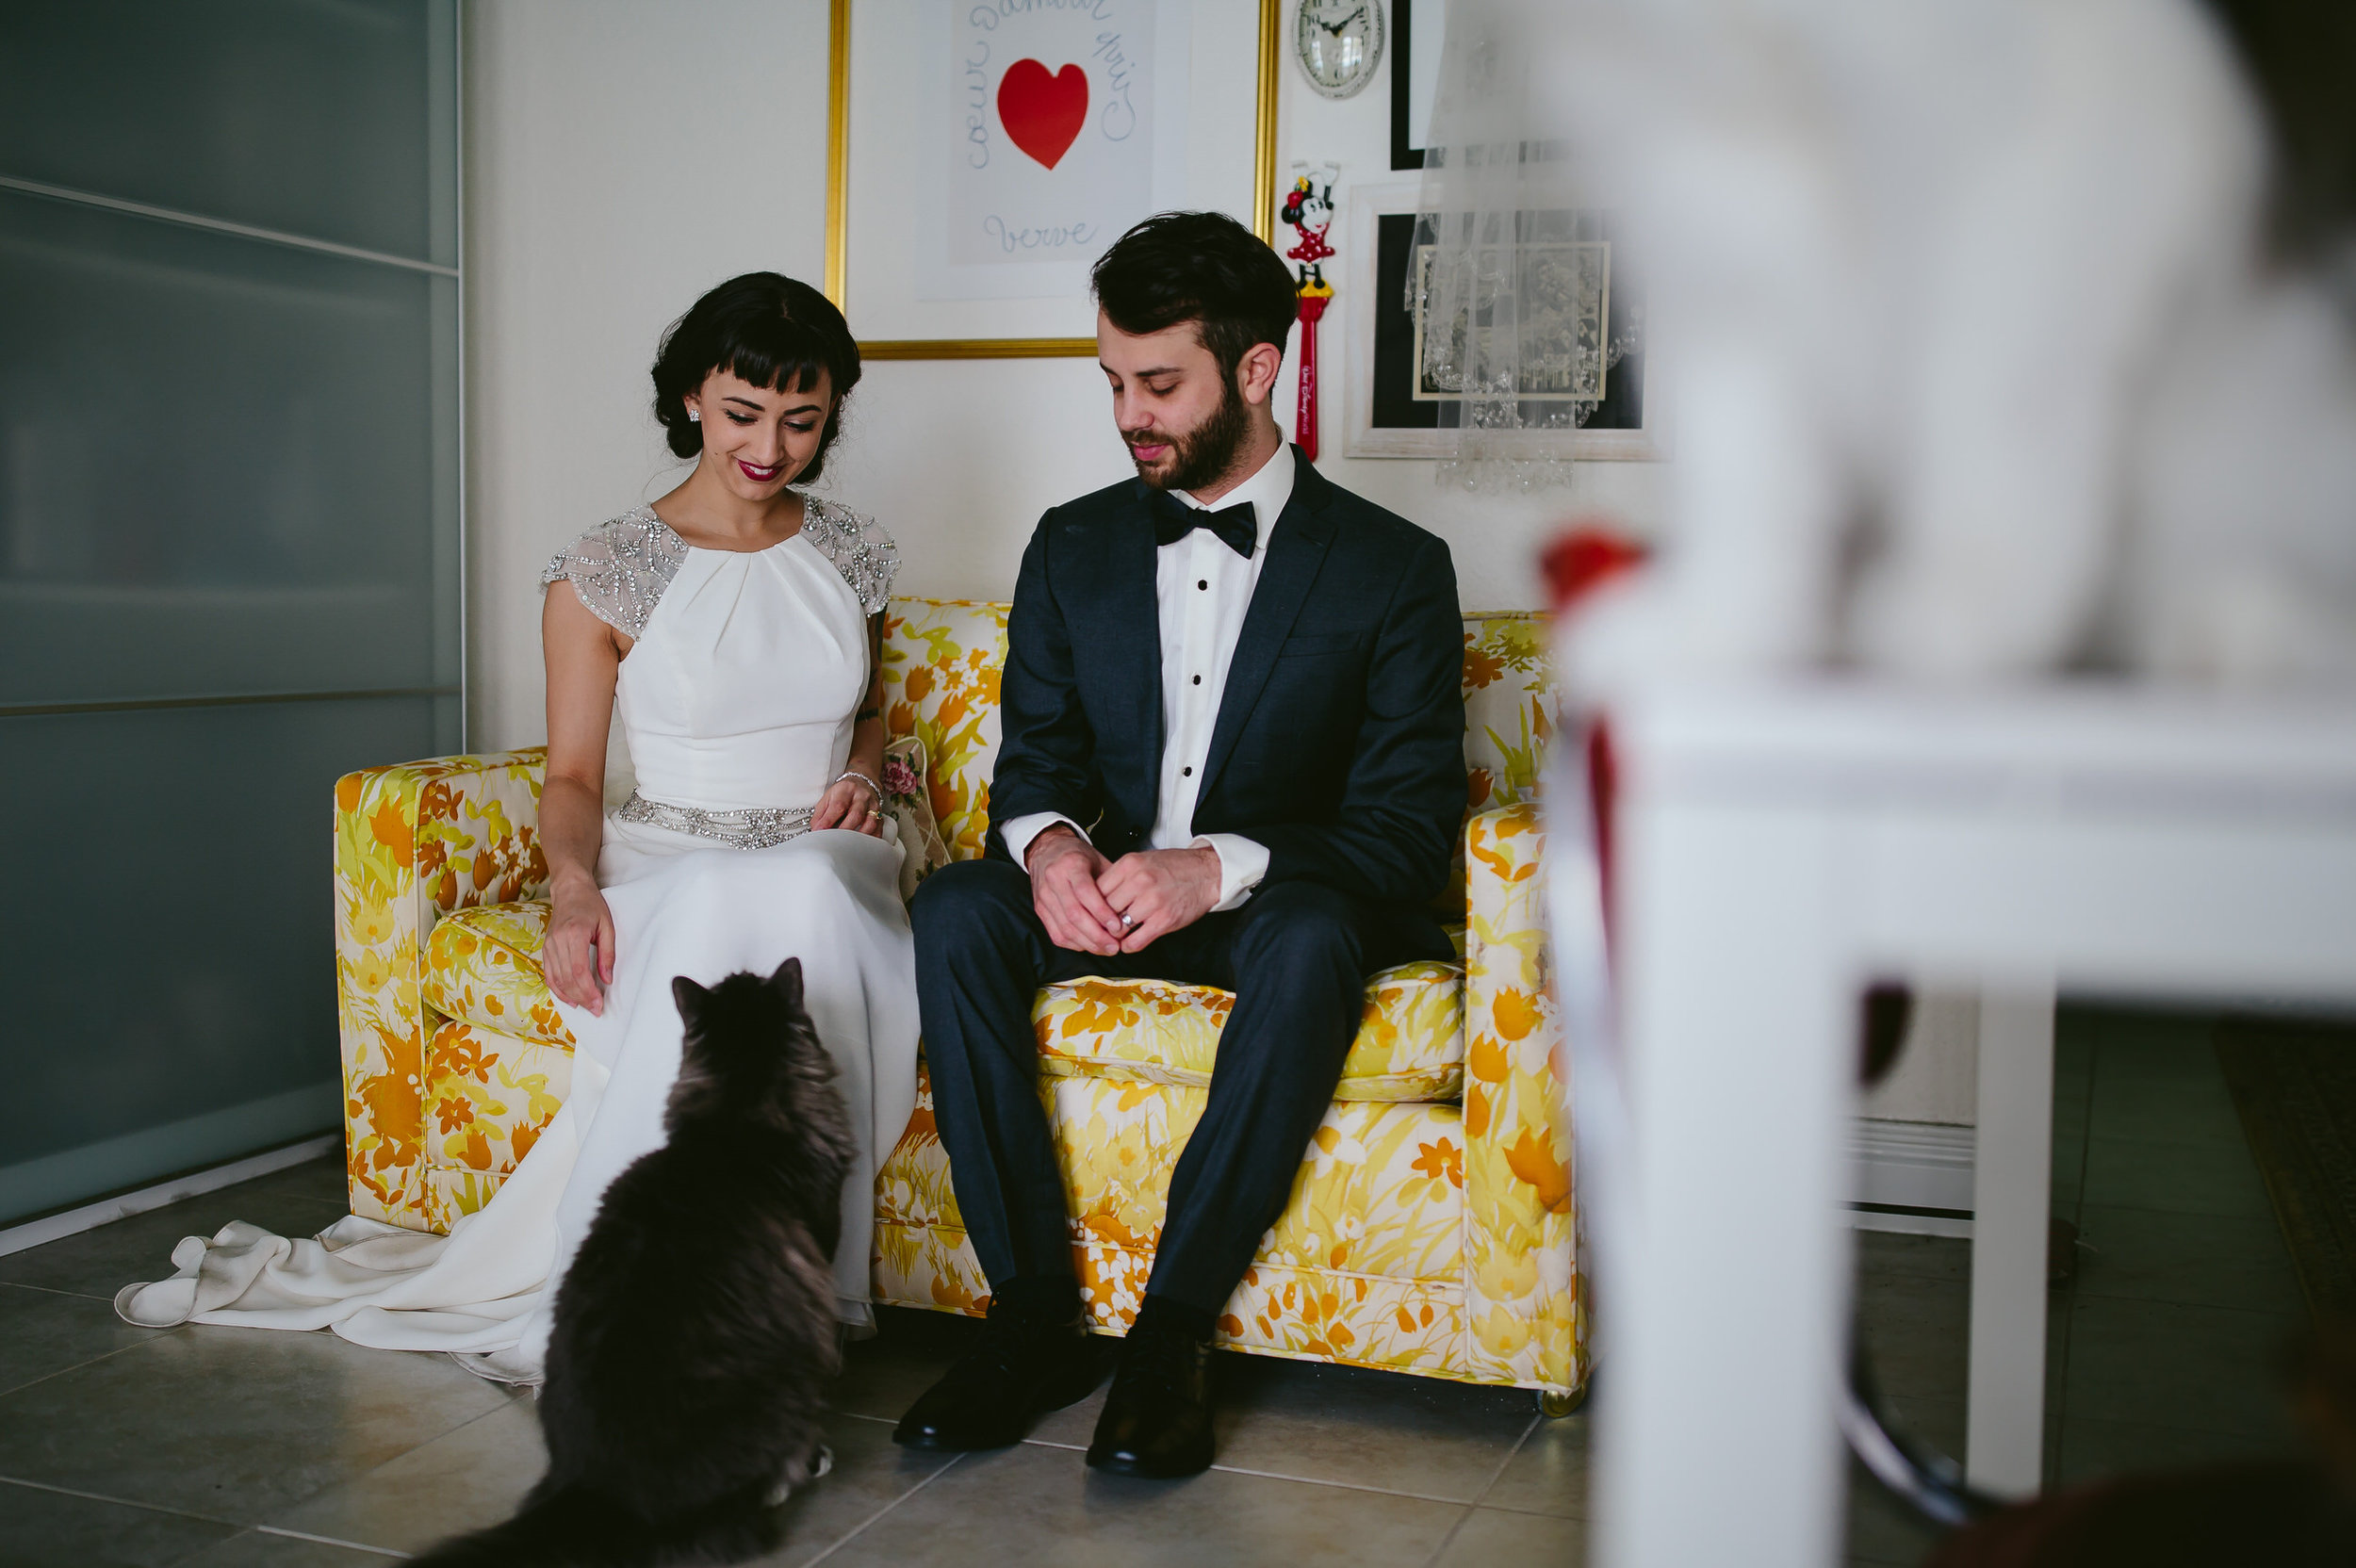 bride_and_groom_cats_in_home_session_wedding_fort_lauderdale_photographer_steph_lynn_photo-10.jpg